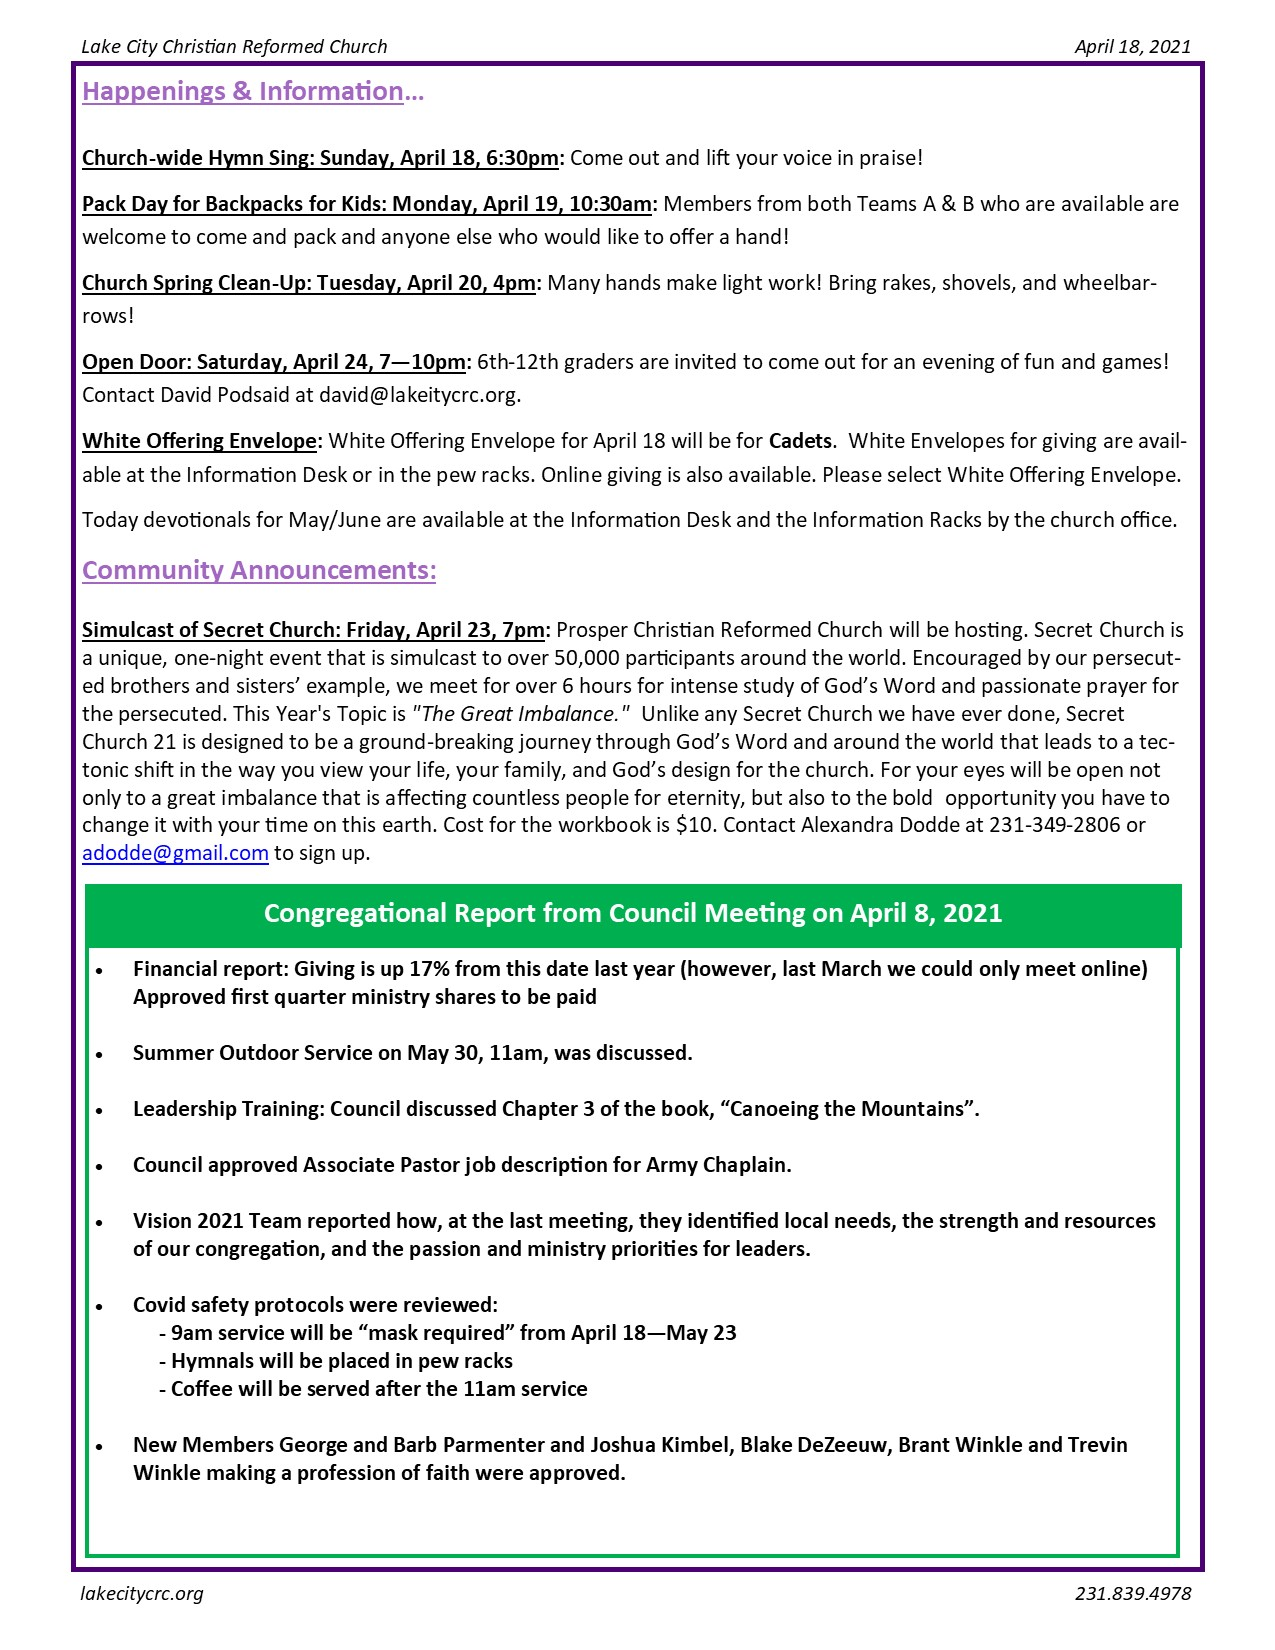 April 18, 2021 Bulletin Insert